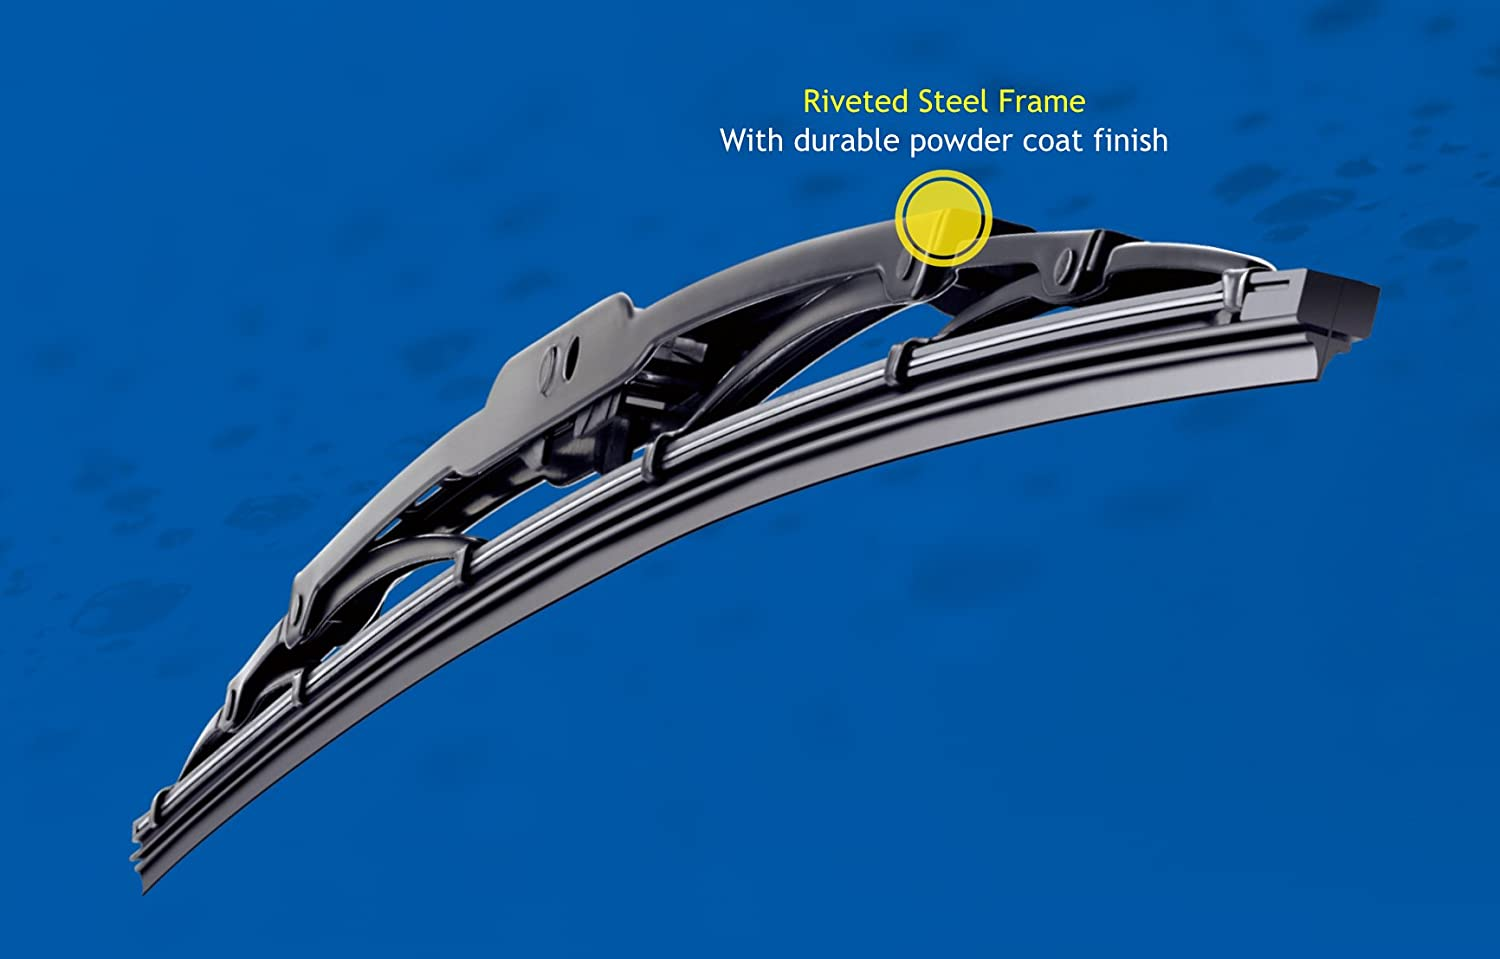 Pack of 1 11 Michelin 3711 RainForce All Weather Performance Windshield Wiper Blade